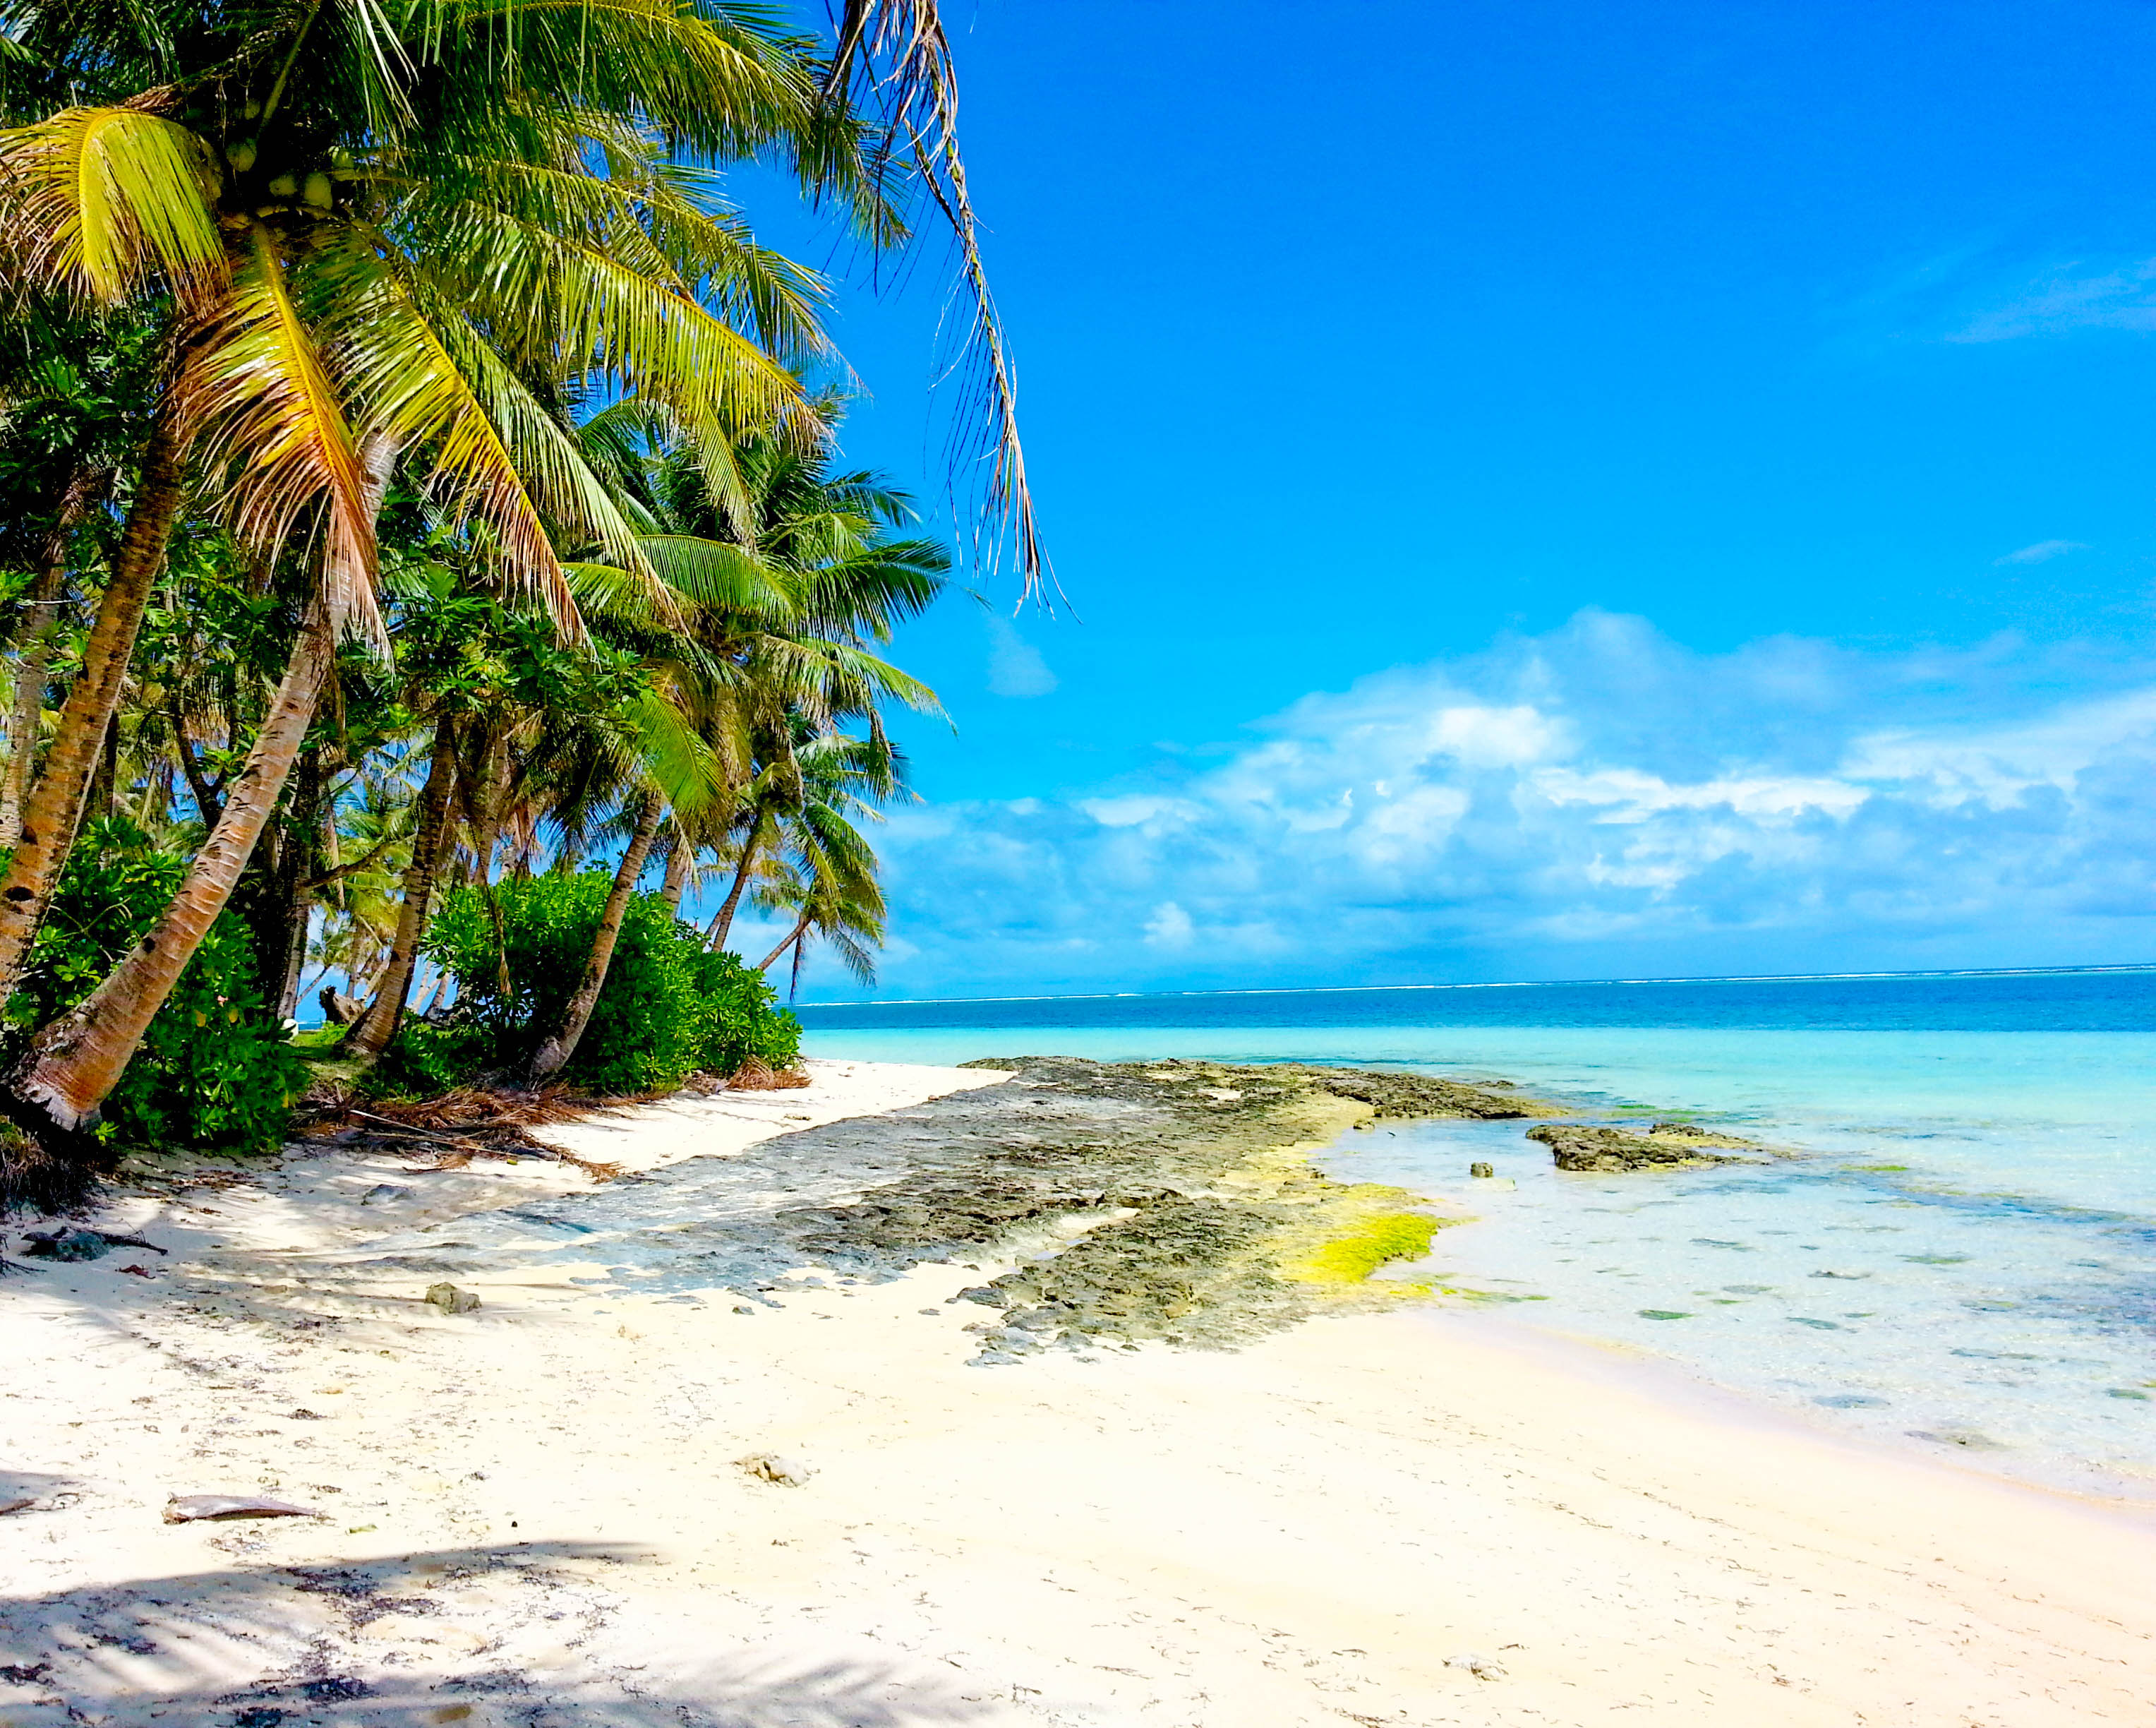 White sand beach with coconut palms, clear waters, and blue skies in Siargao, Philippines